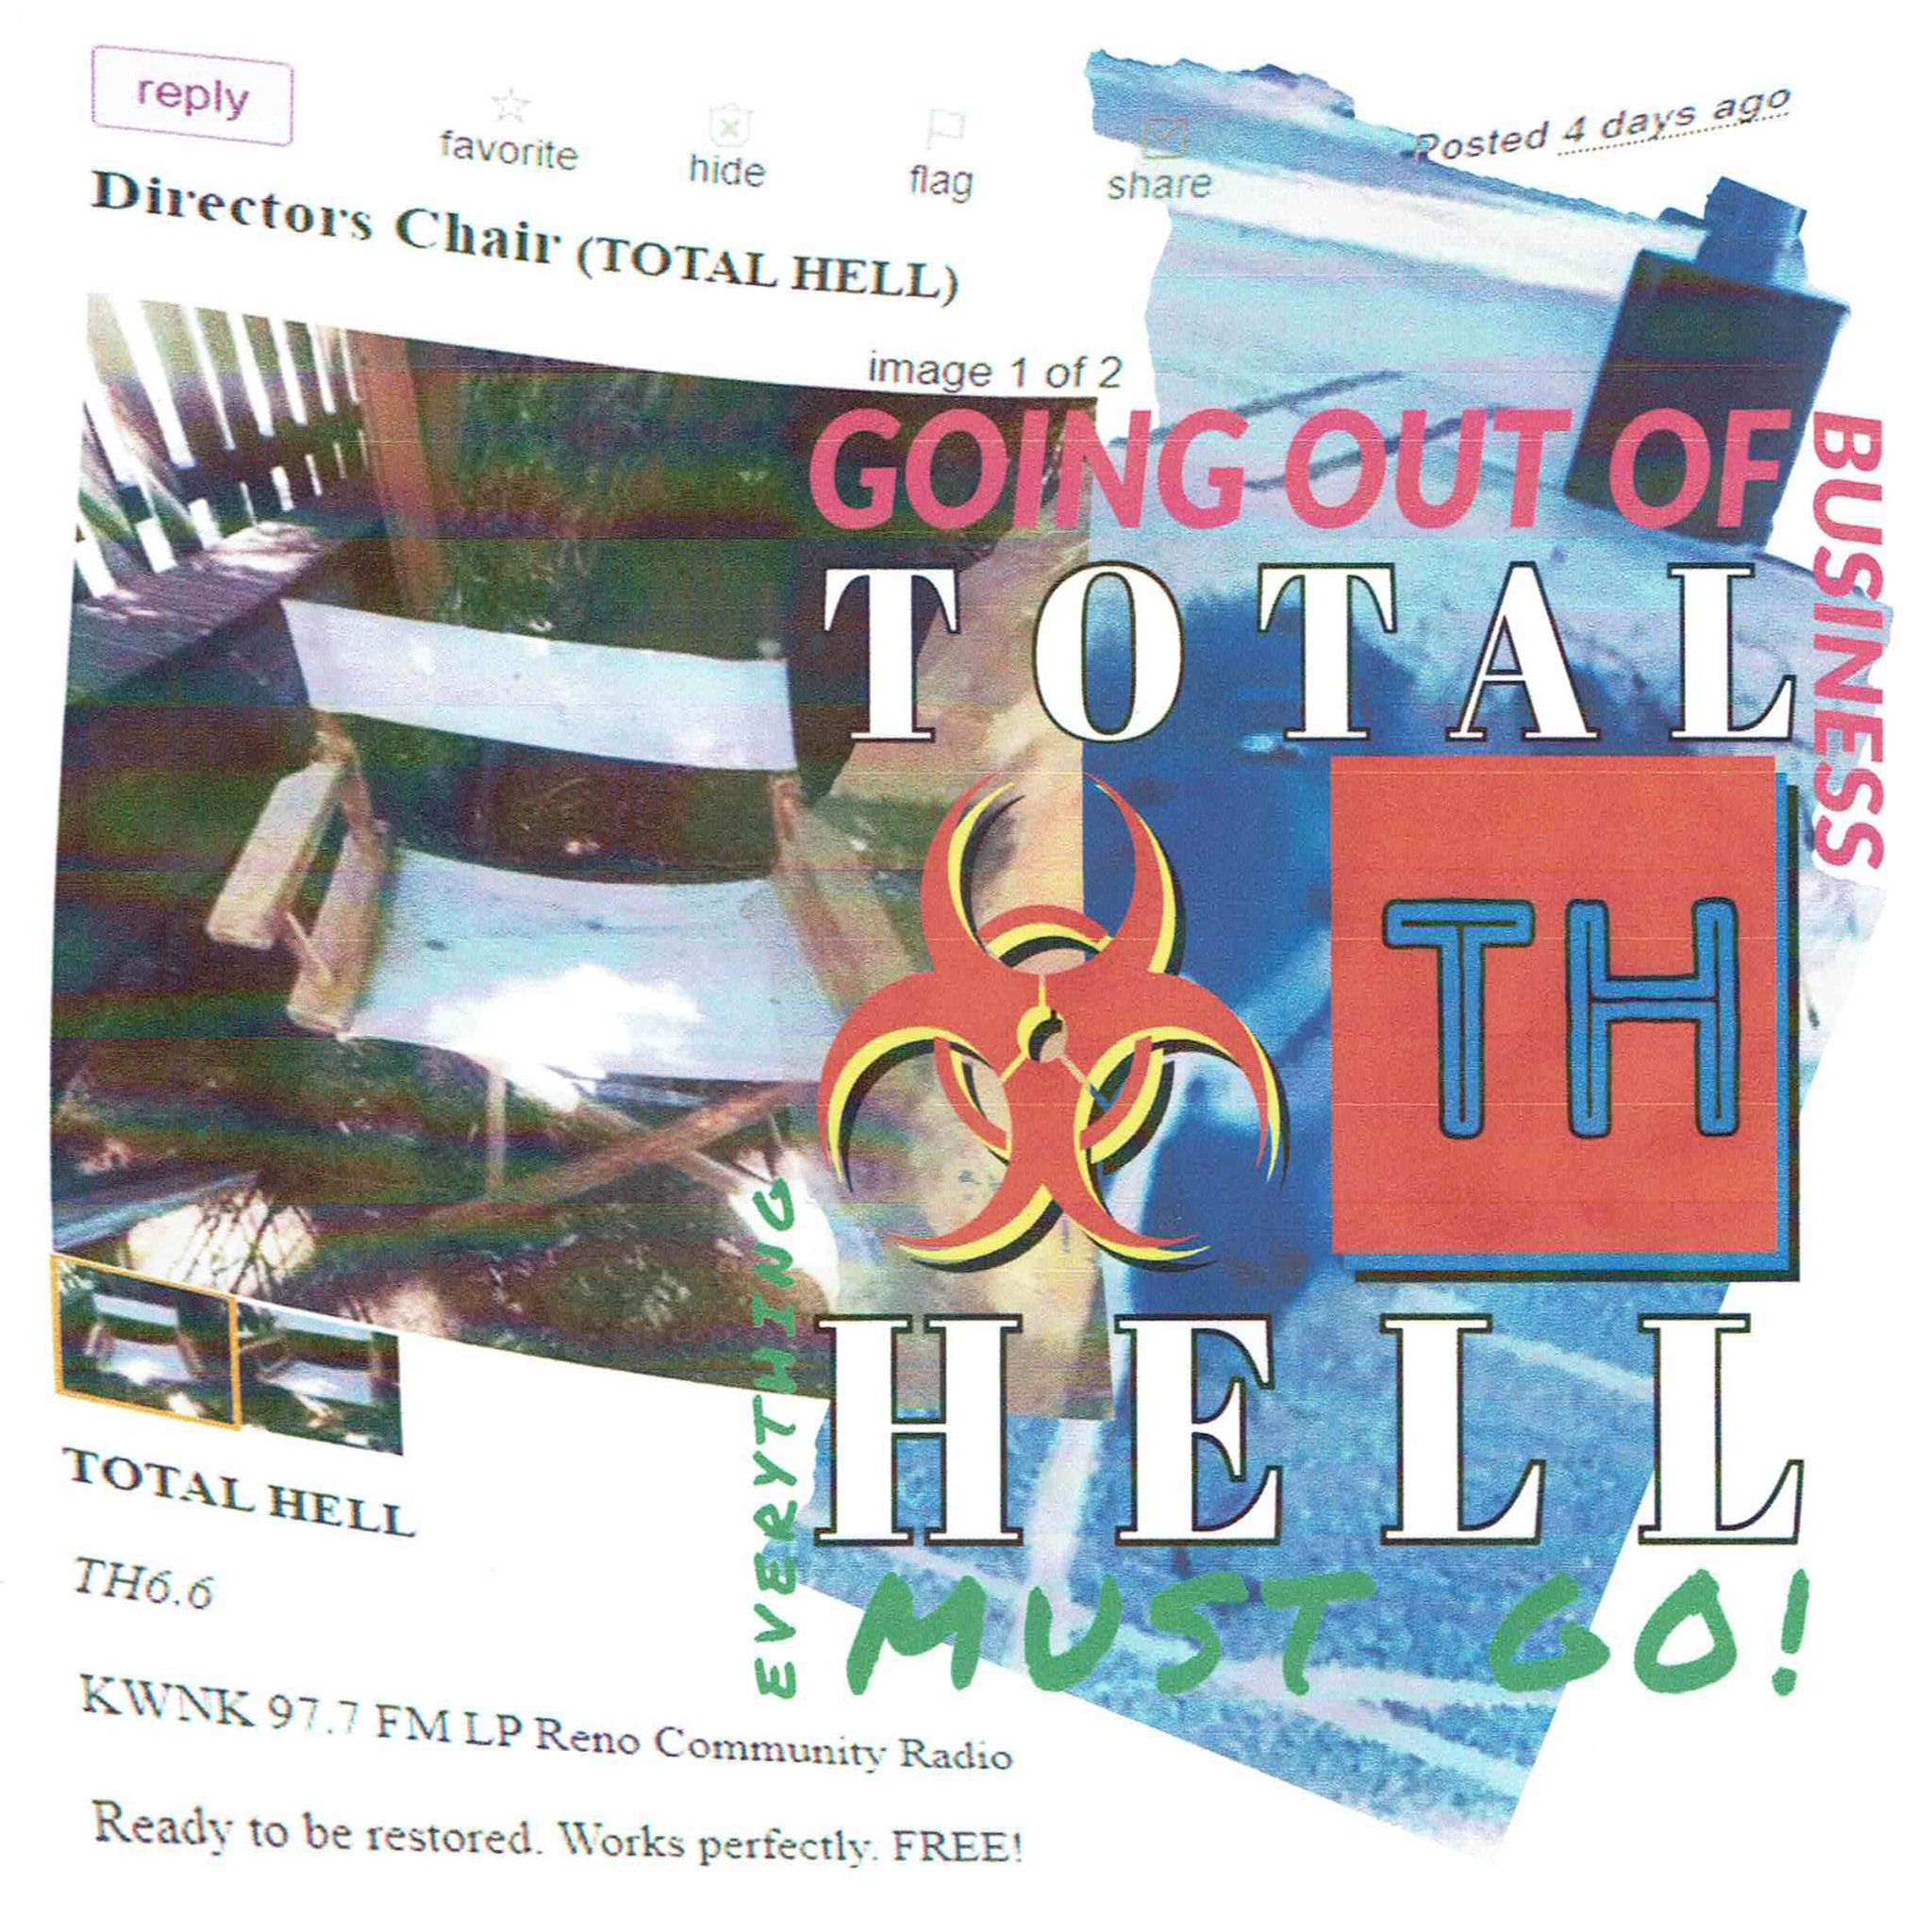 TOTAL HELL Says Goodbye: A Rare Look Behind the Scenes of the Subversive KWNK Radio Show